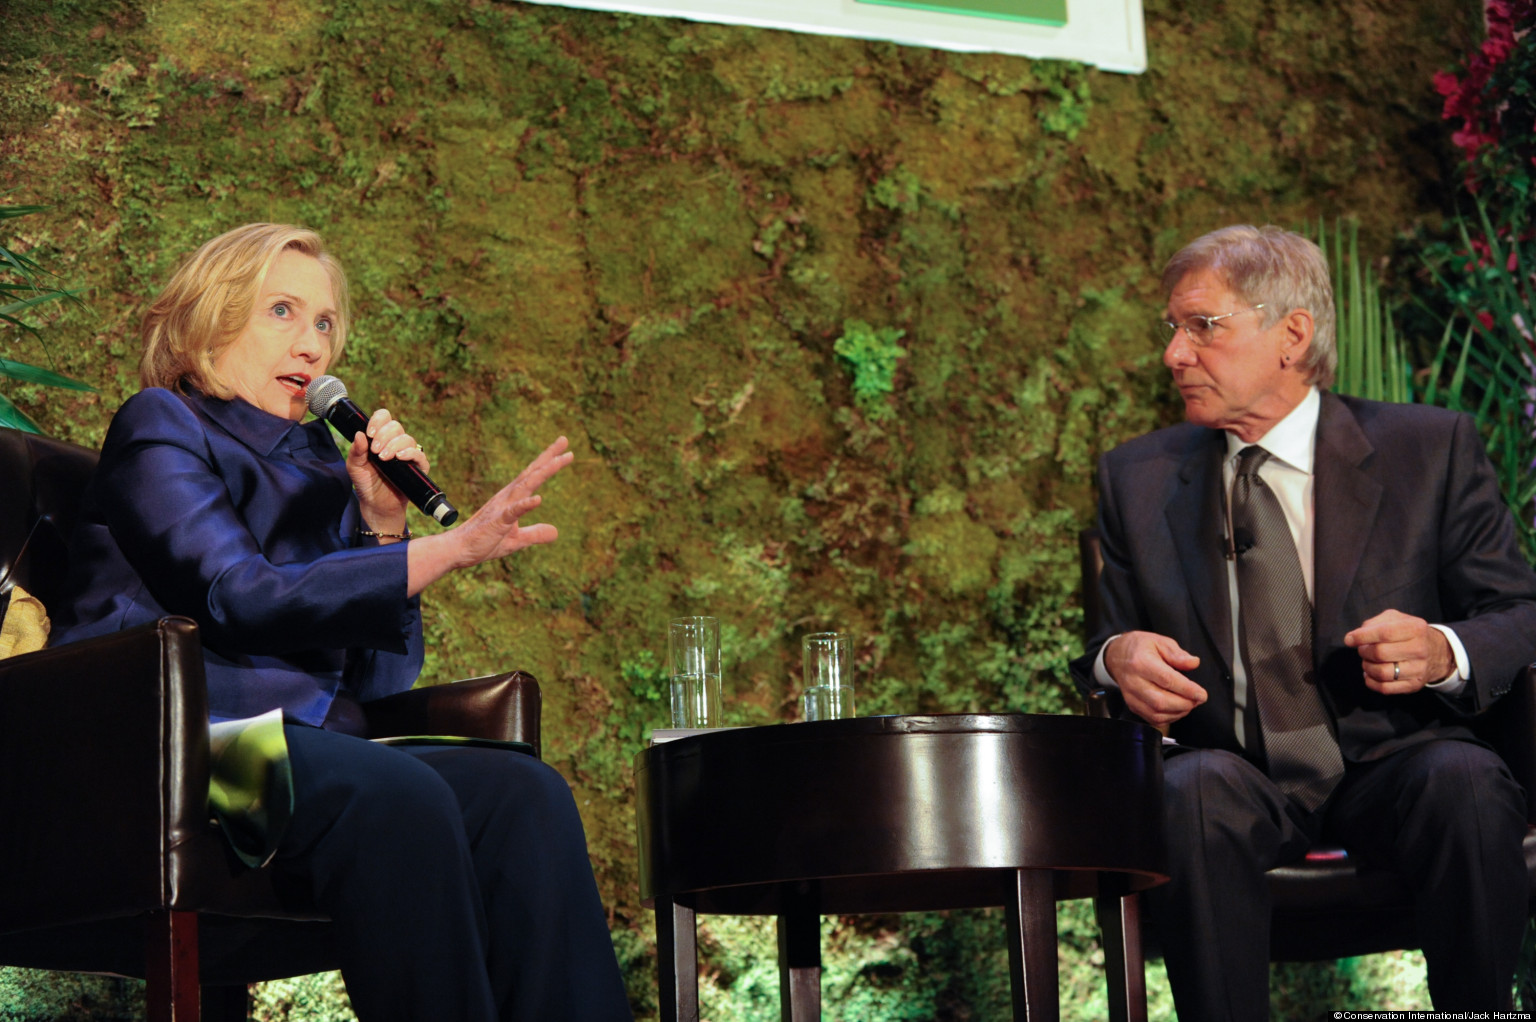 Hillary Clinton Weighs In On Climate Change